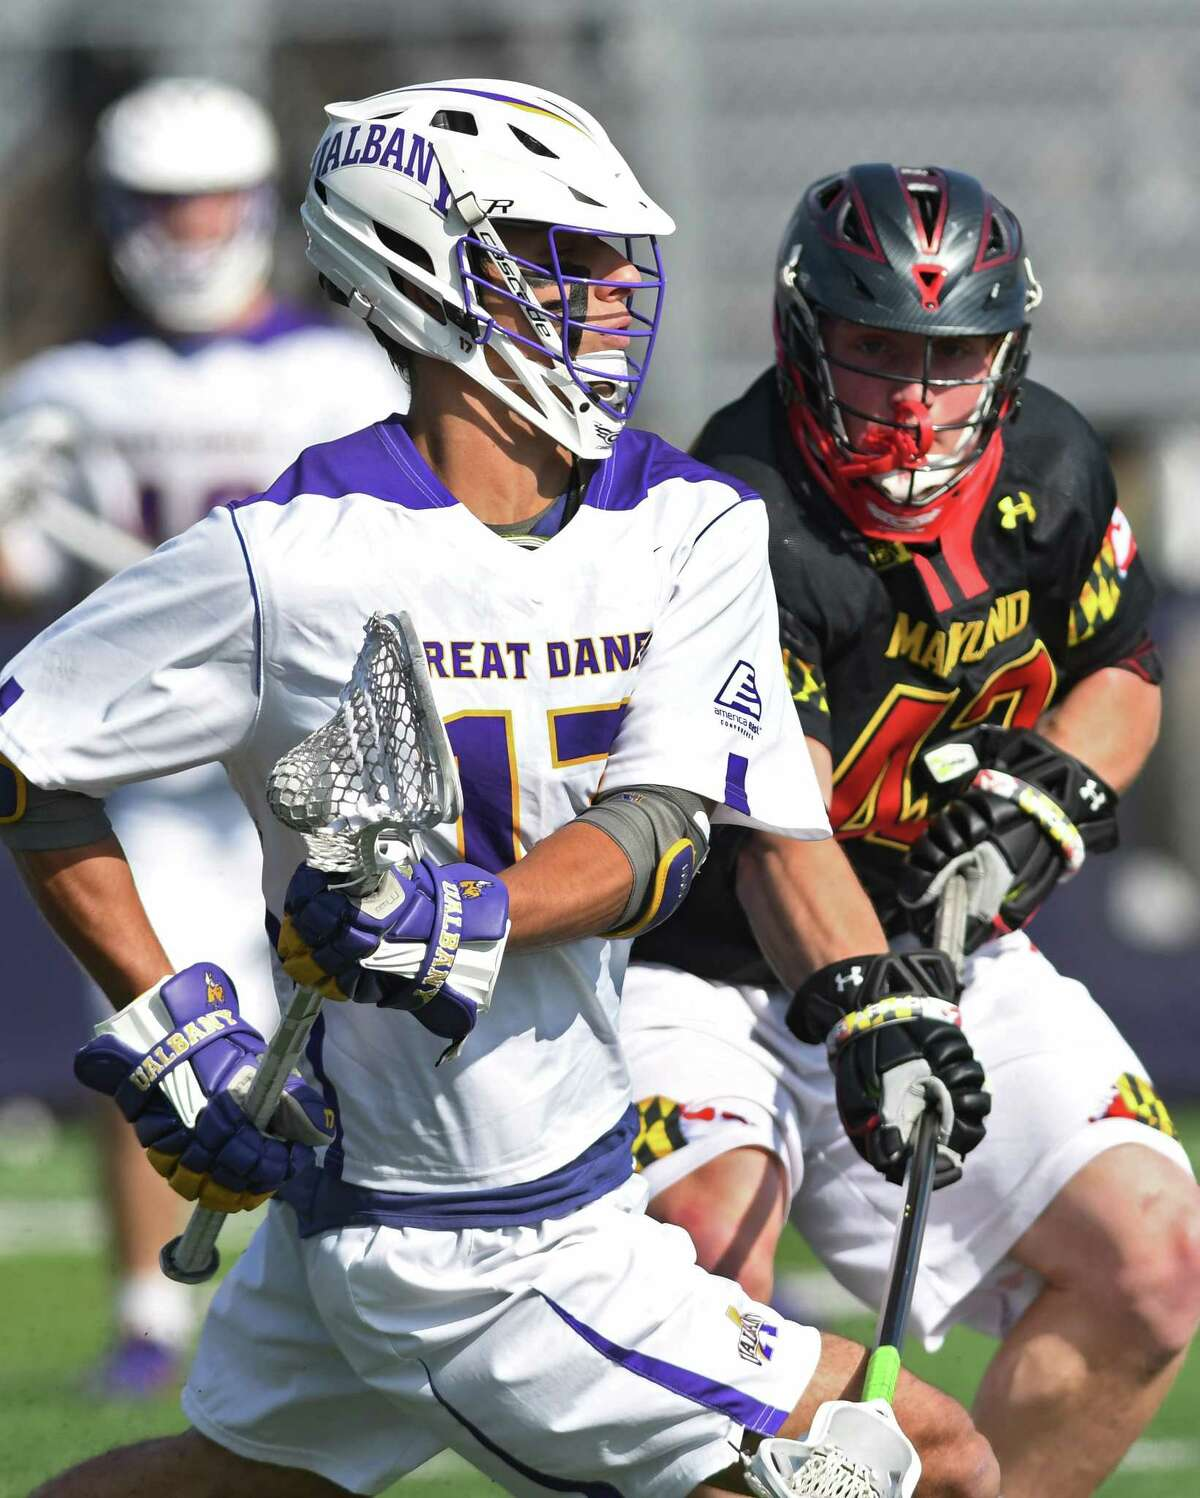 University at Albany's Adam Osika, left, is defended by Maryland's Curtis Corley during a lacrosse game on Wednesday, April 12, 2017 in Albany, N.Y. (Lori Van Buren / Times Union)